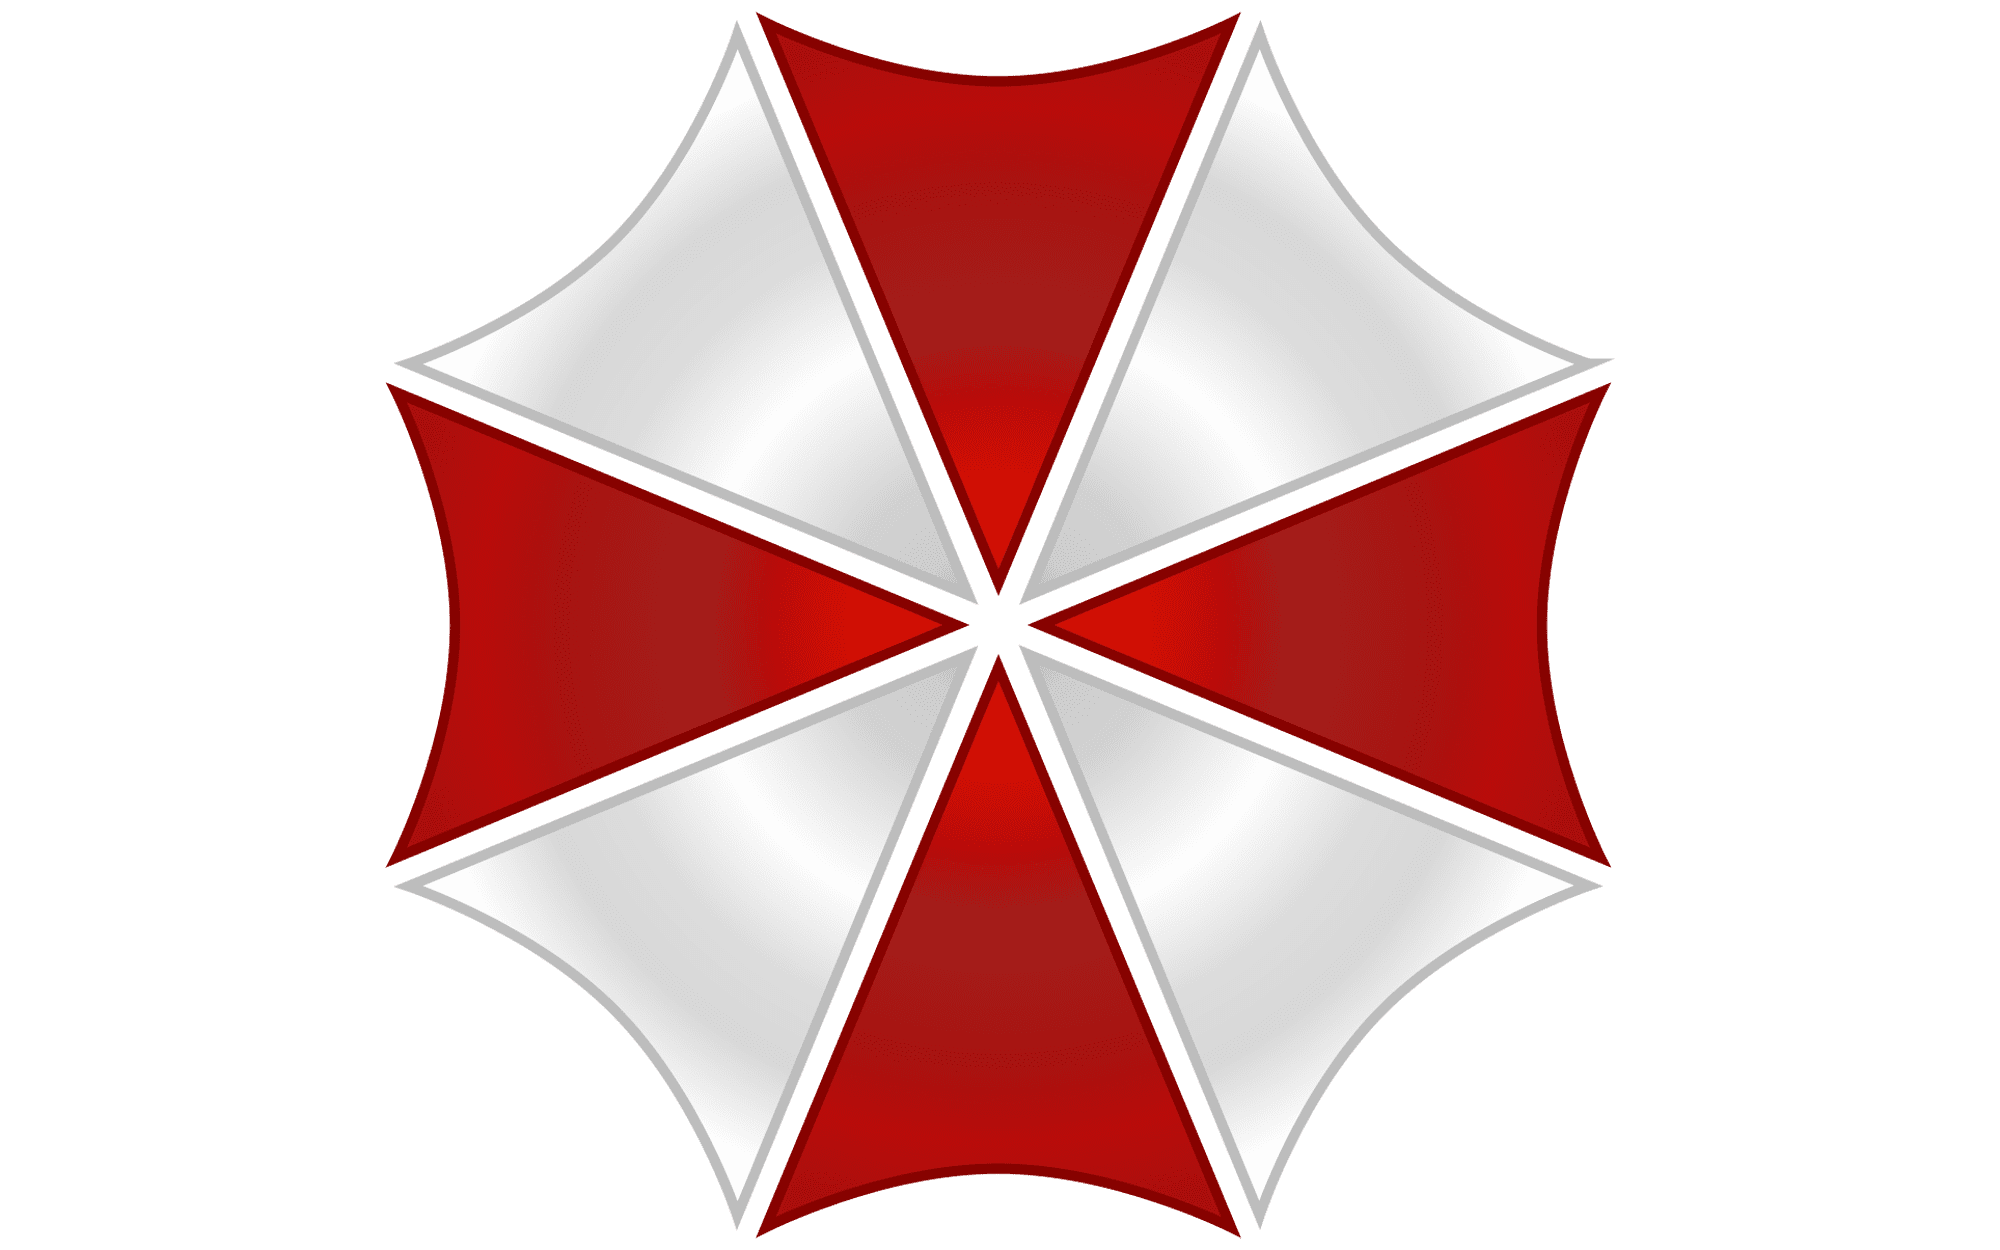 Umbrella Corporation logo and symbol, meaning, history, PNG